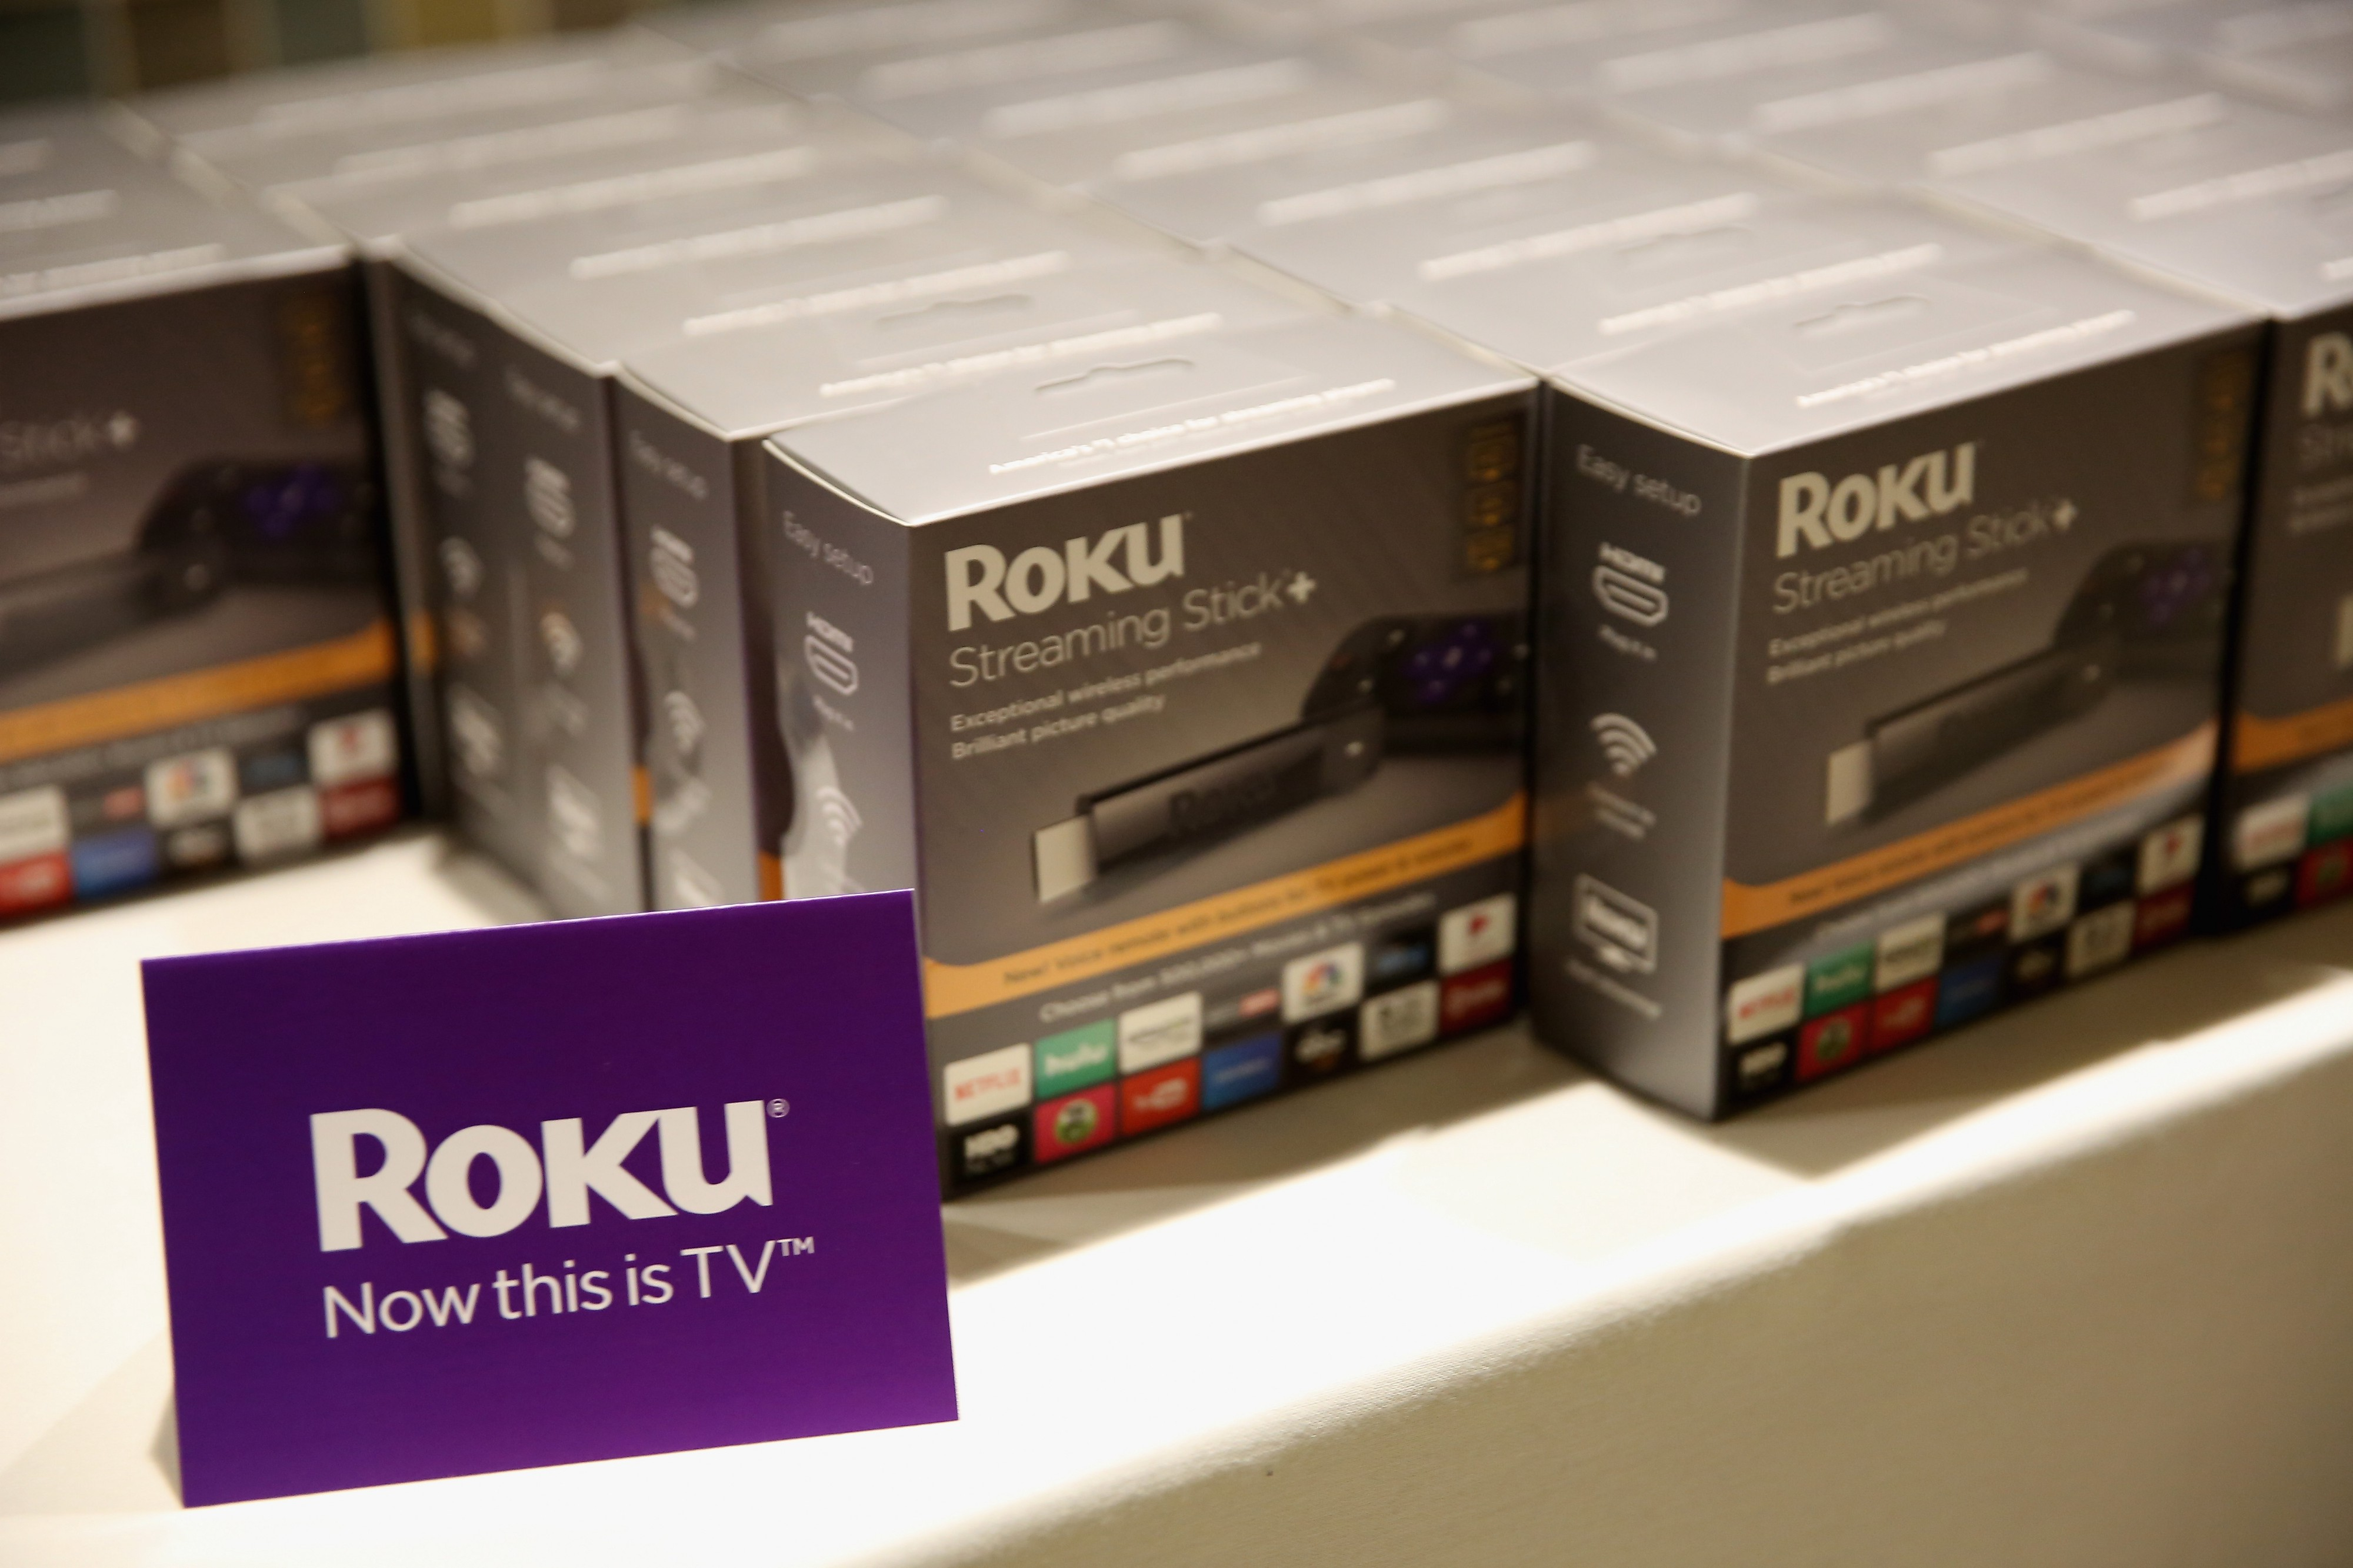 Roku Keeps Going Back To Home Screen 2020.Roku Built The Dominant Streaming Box Now It S Under Siege